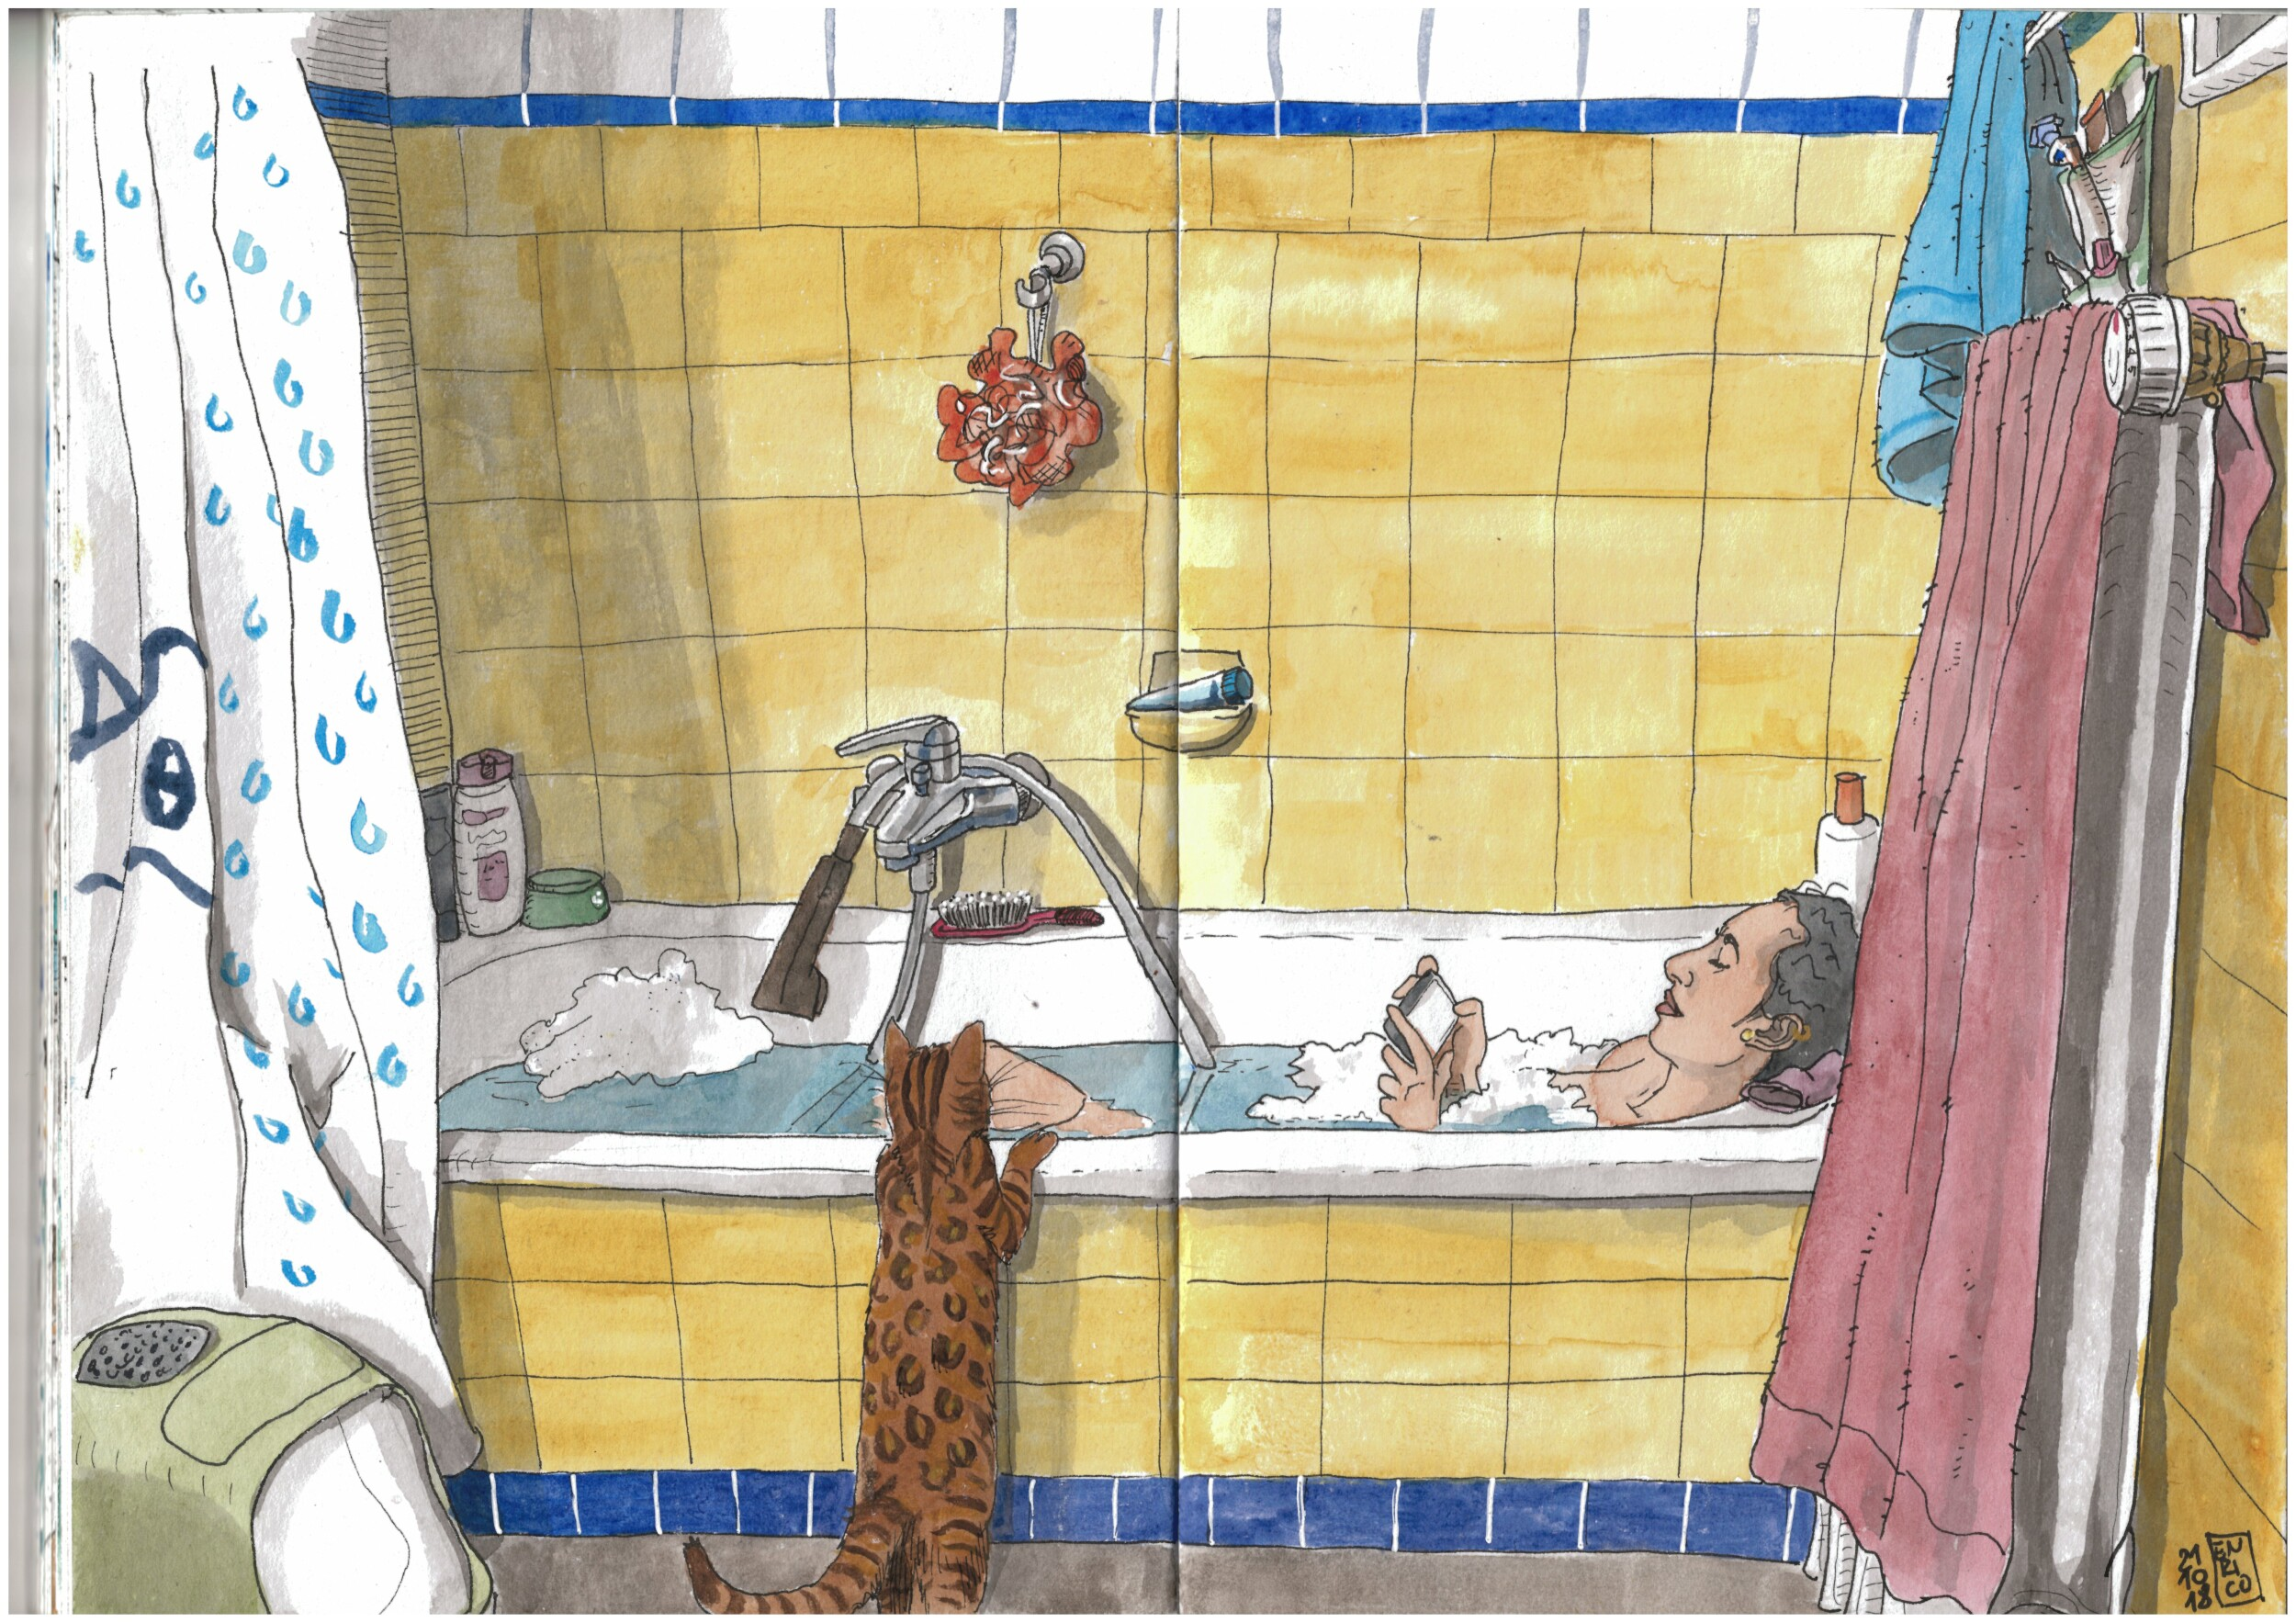 A Jazz playlist was playing, the cat was roaming around, I was sitting on the closed toilet drawing this nice domestic scene.